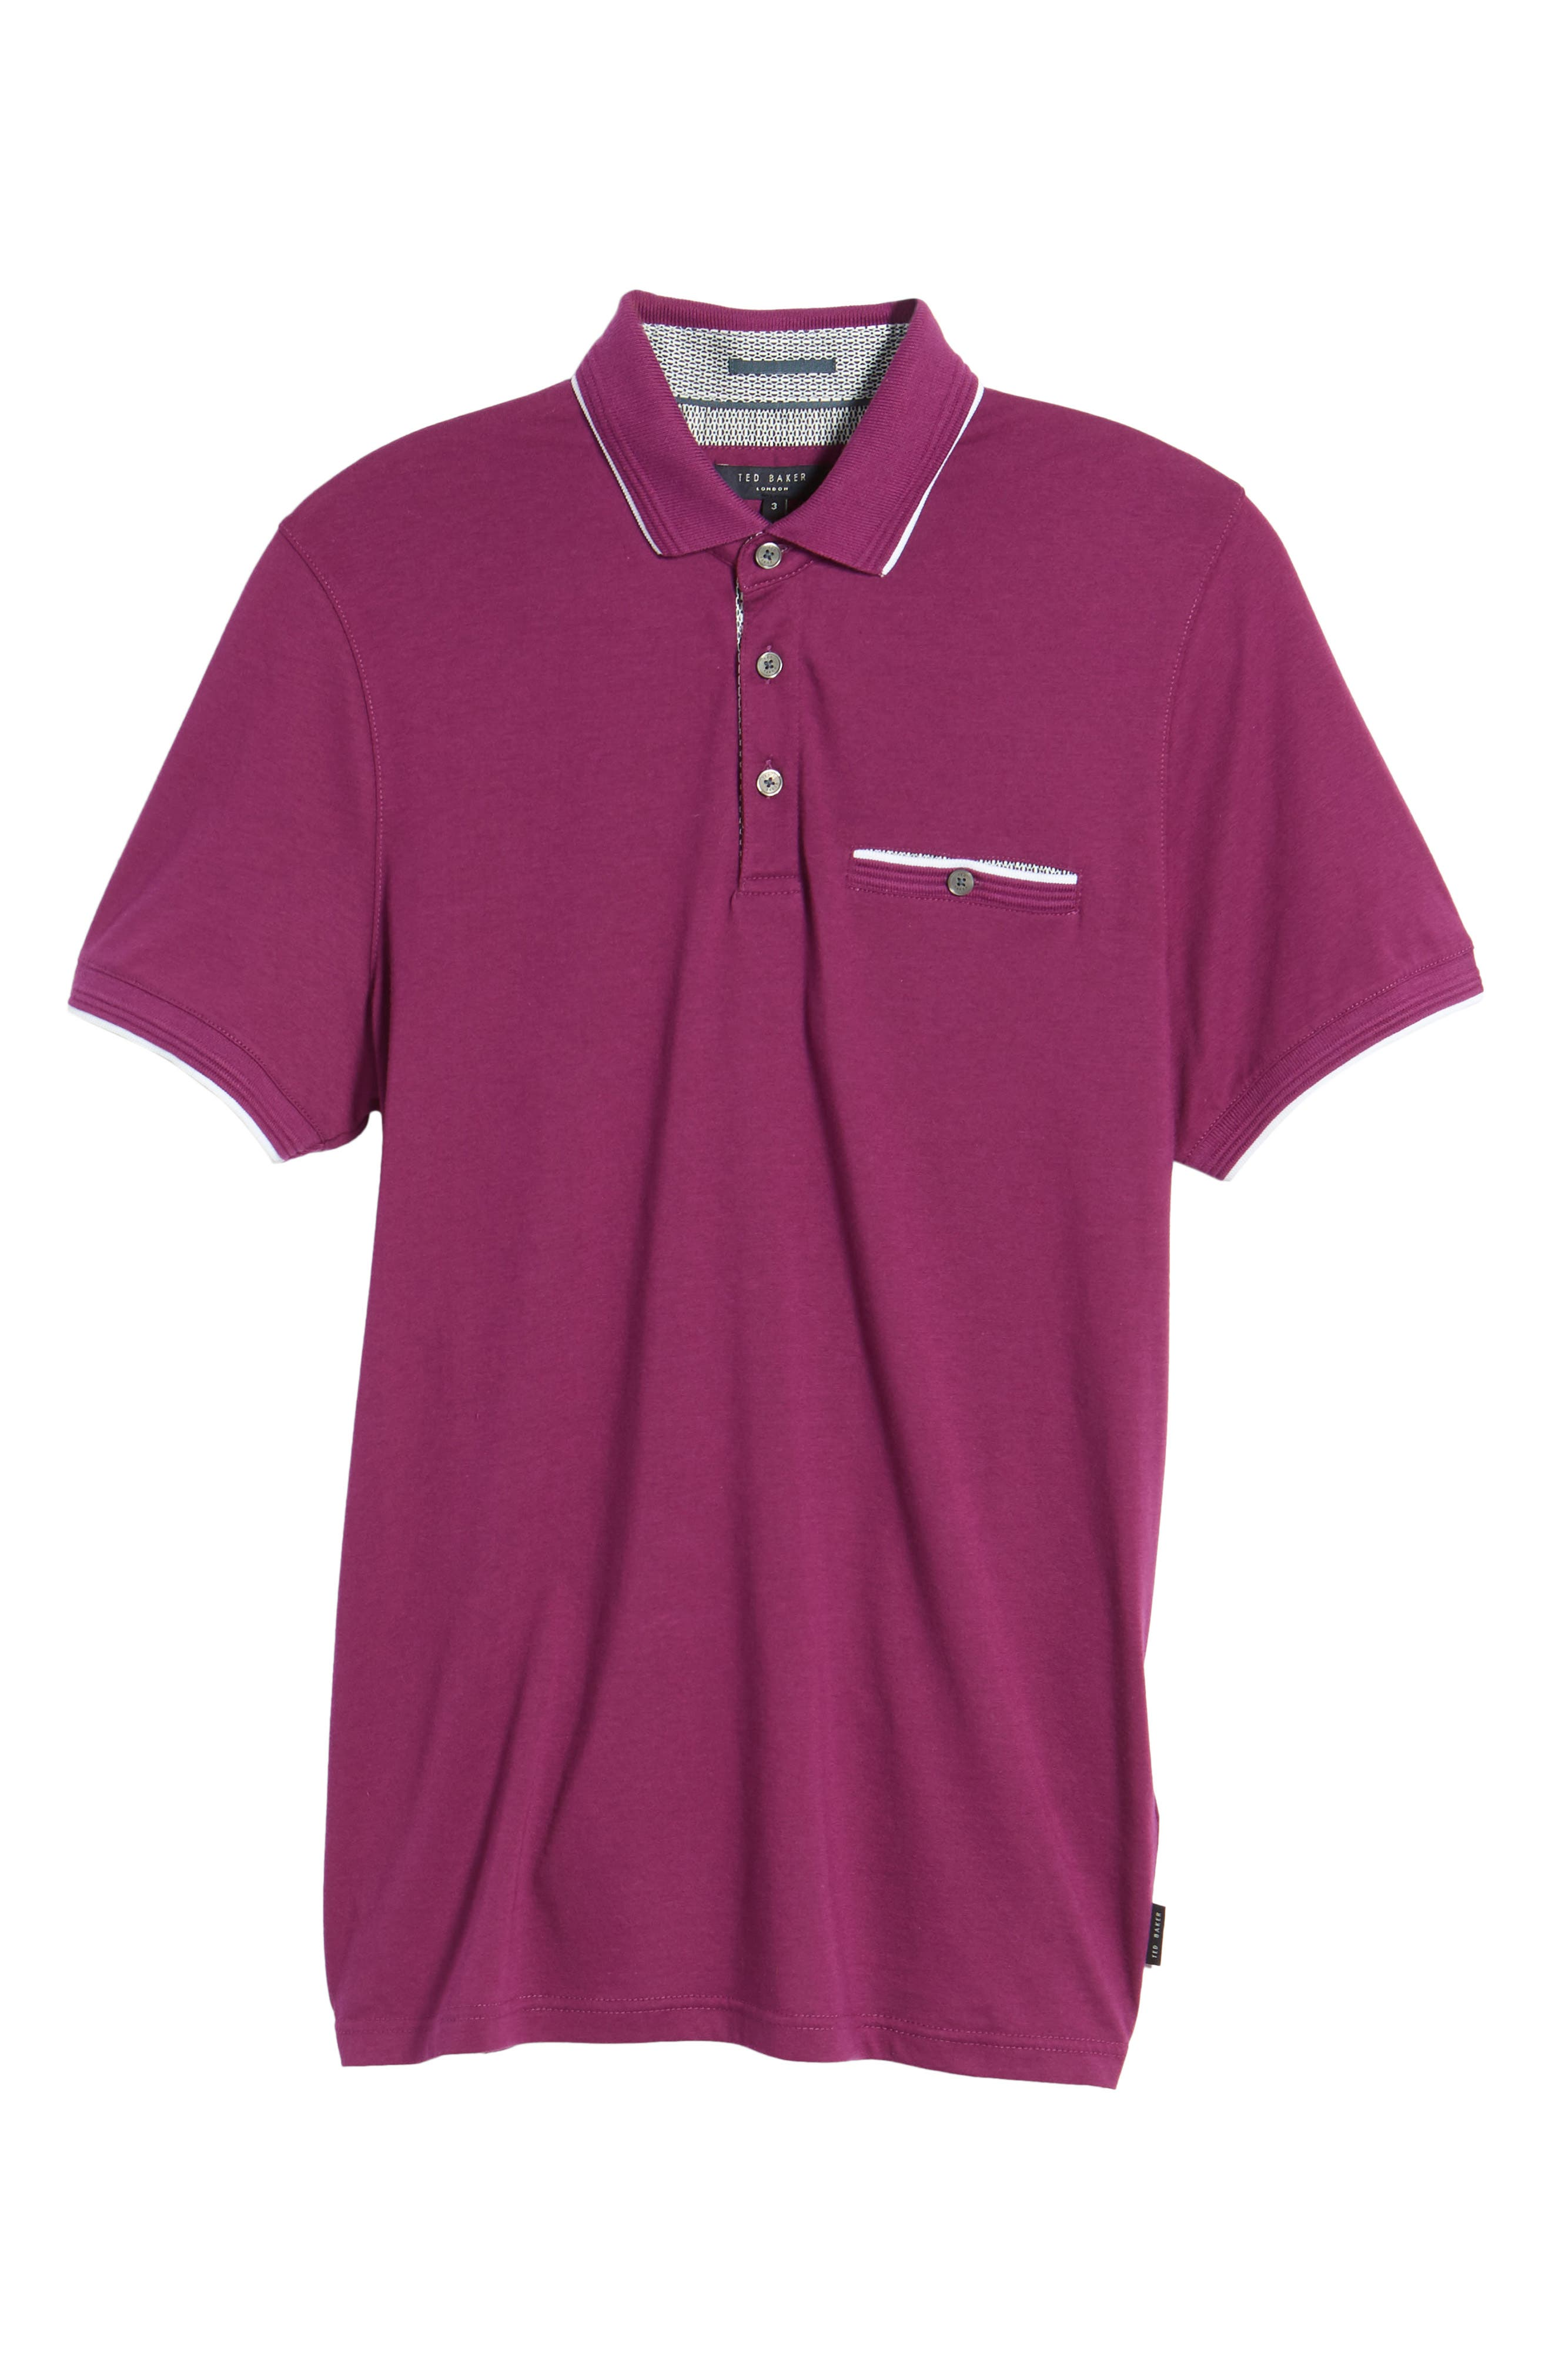 Main Image - Ted Baker London Derry Modern Slim Fit Polo